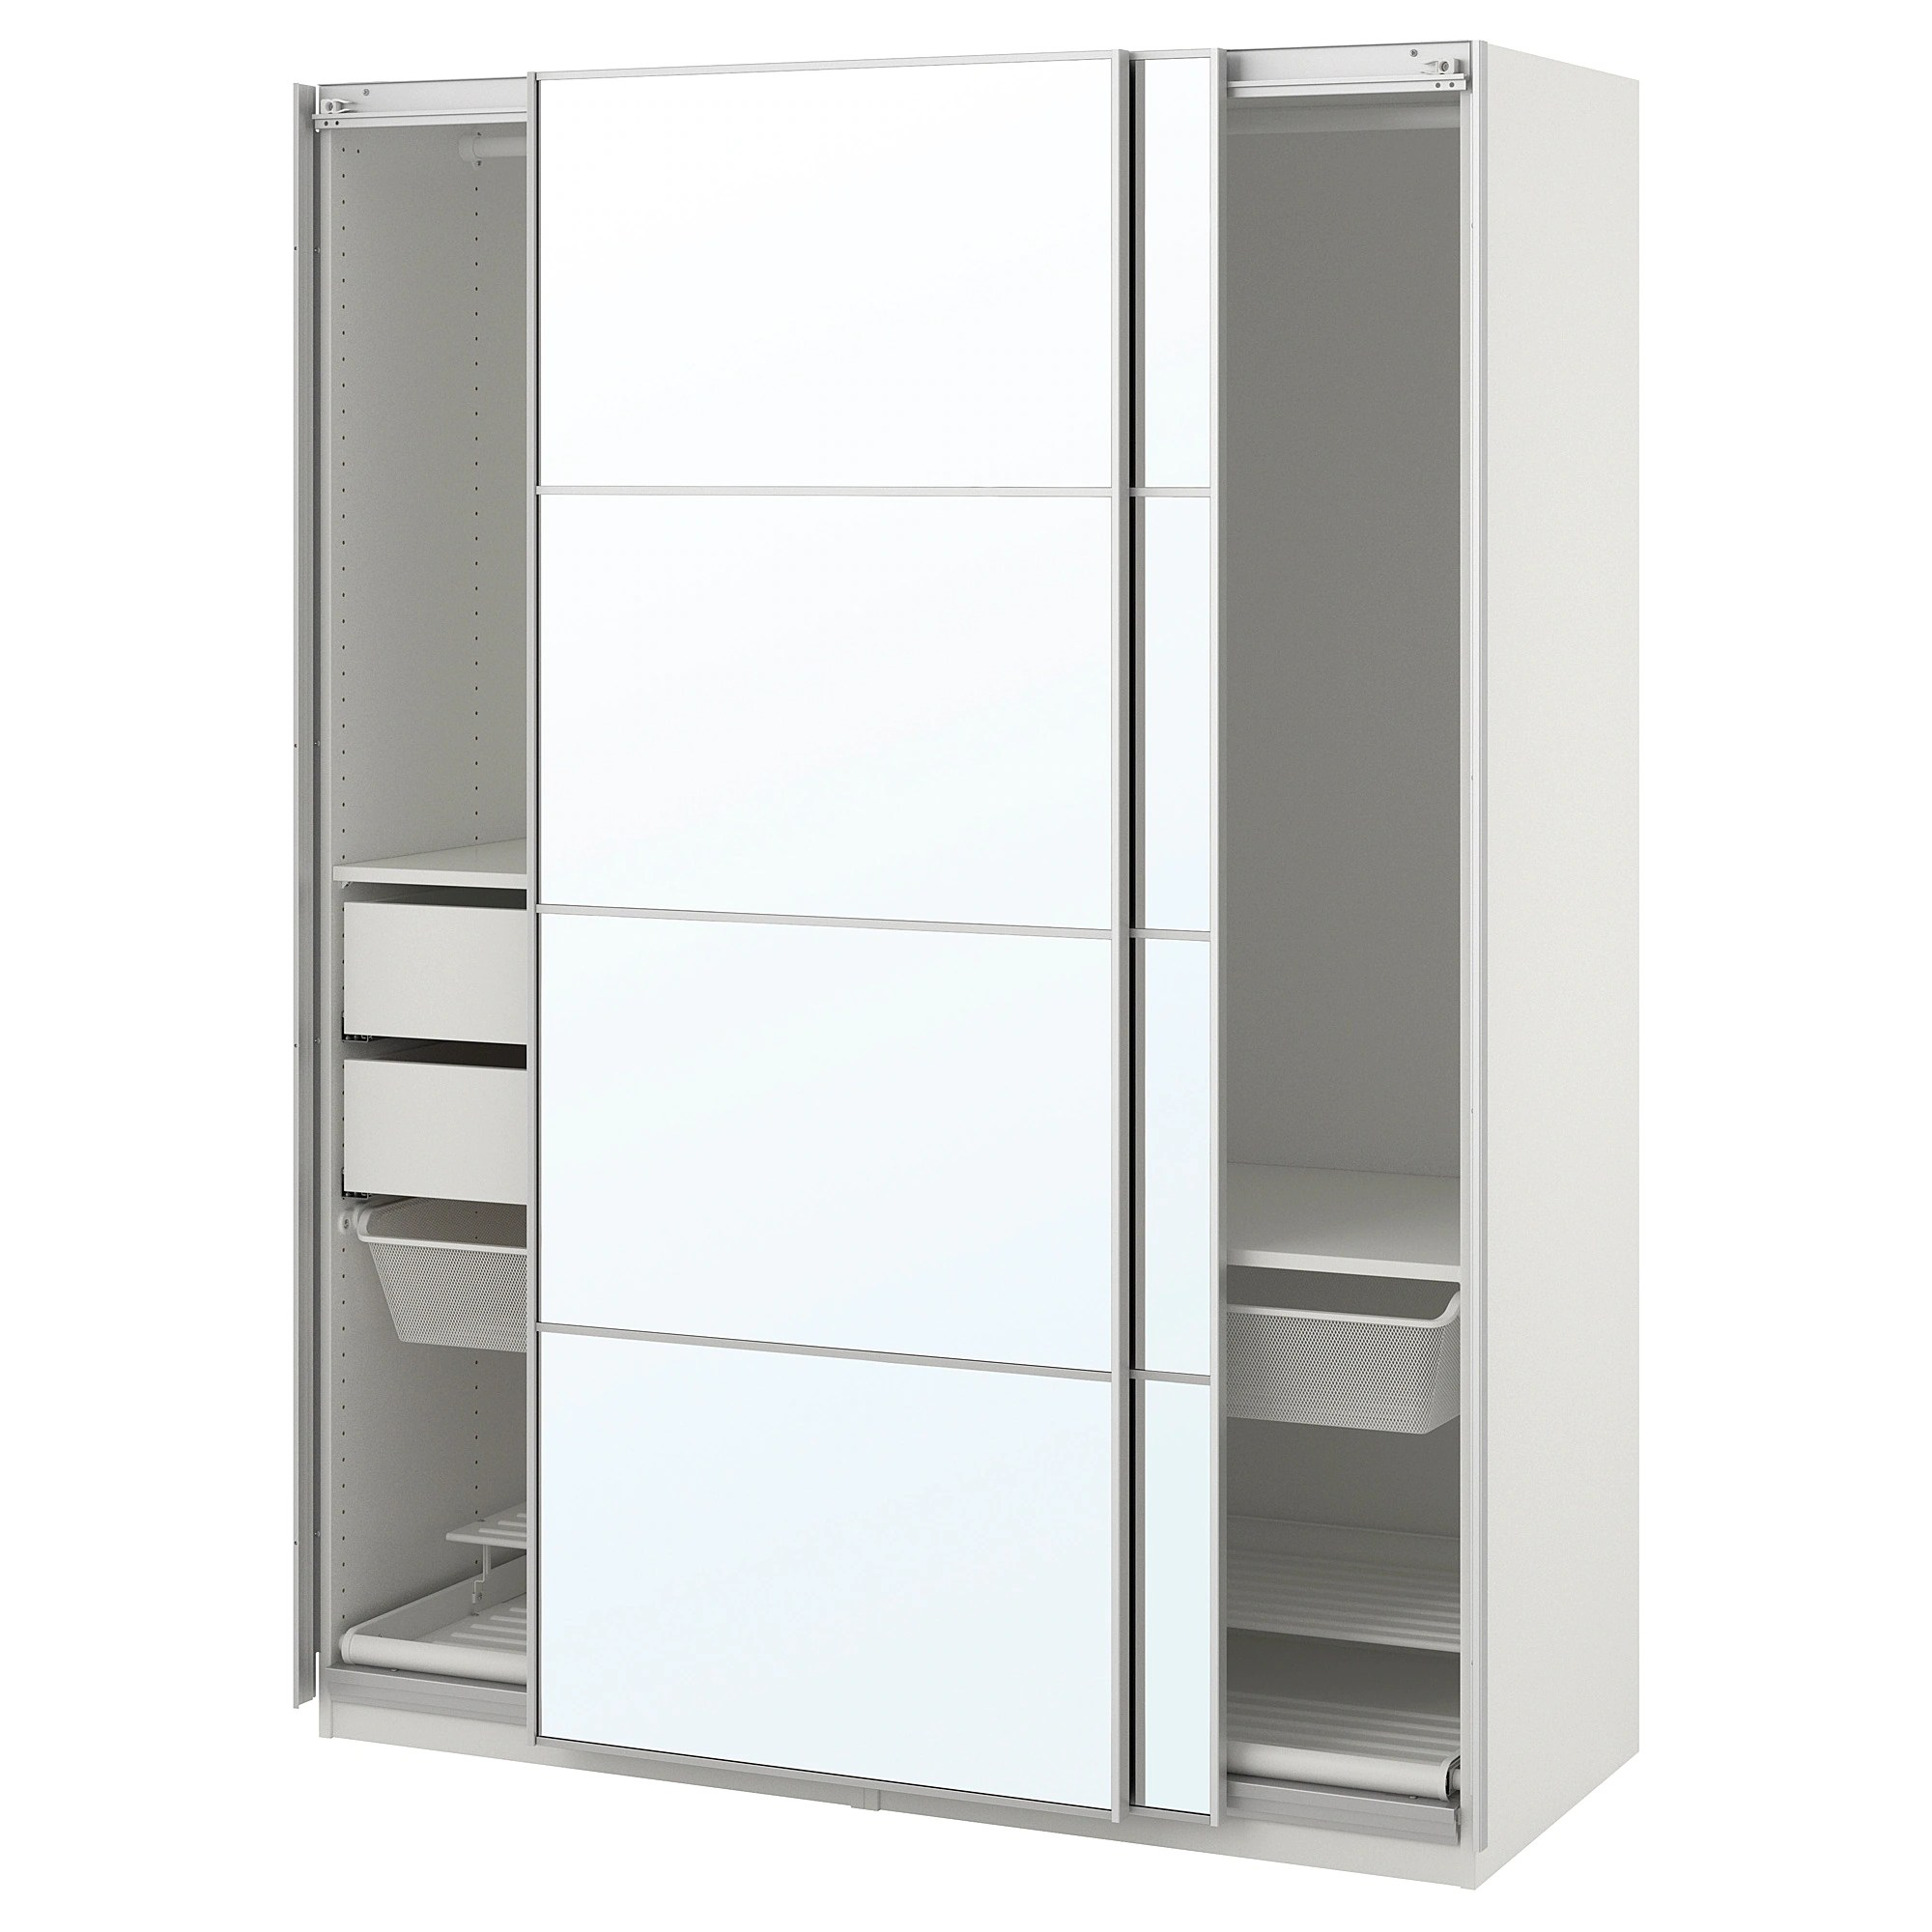 Wardrobe Pax White Auli Mirror Glass